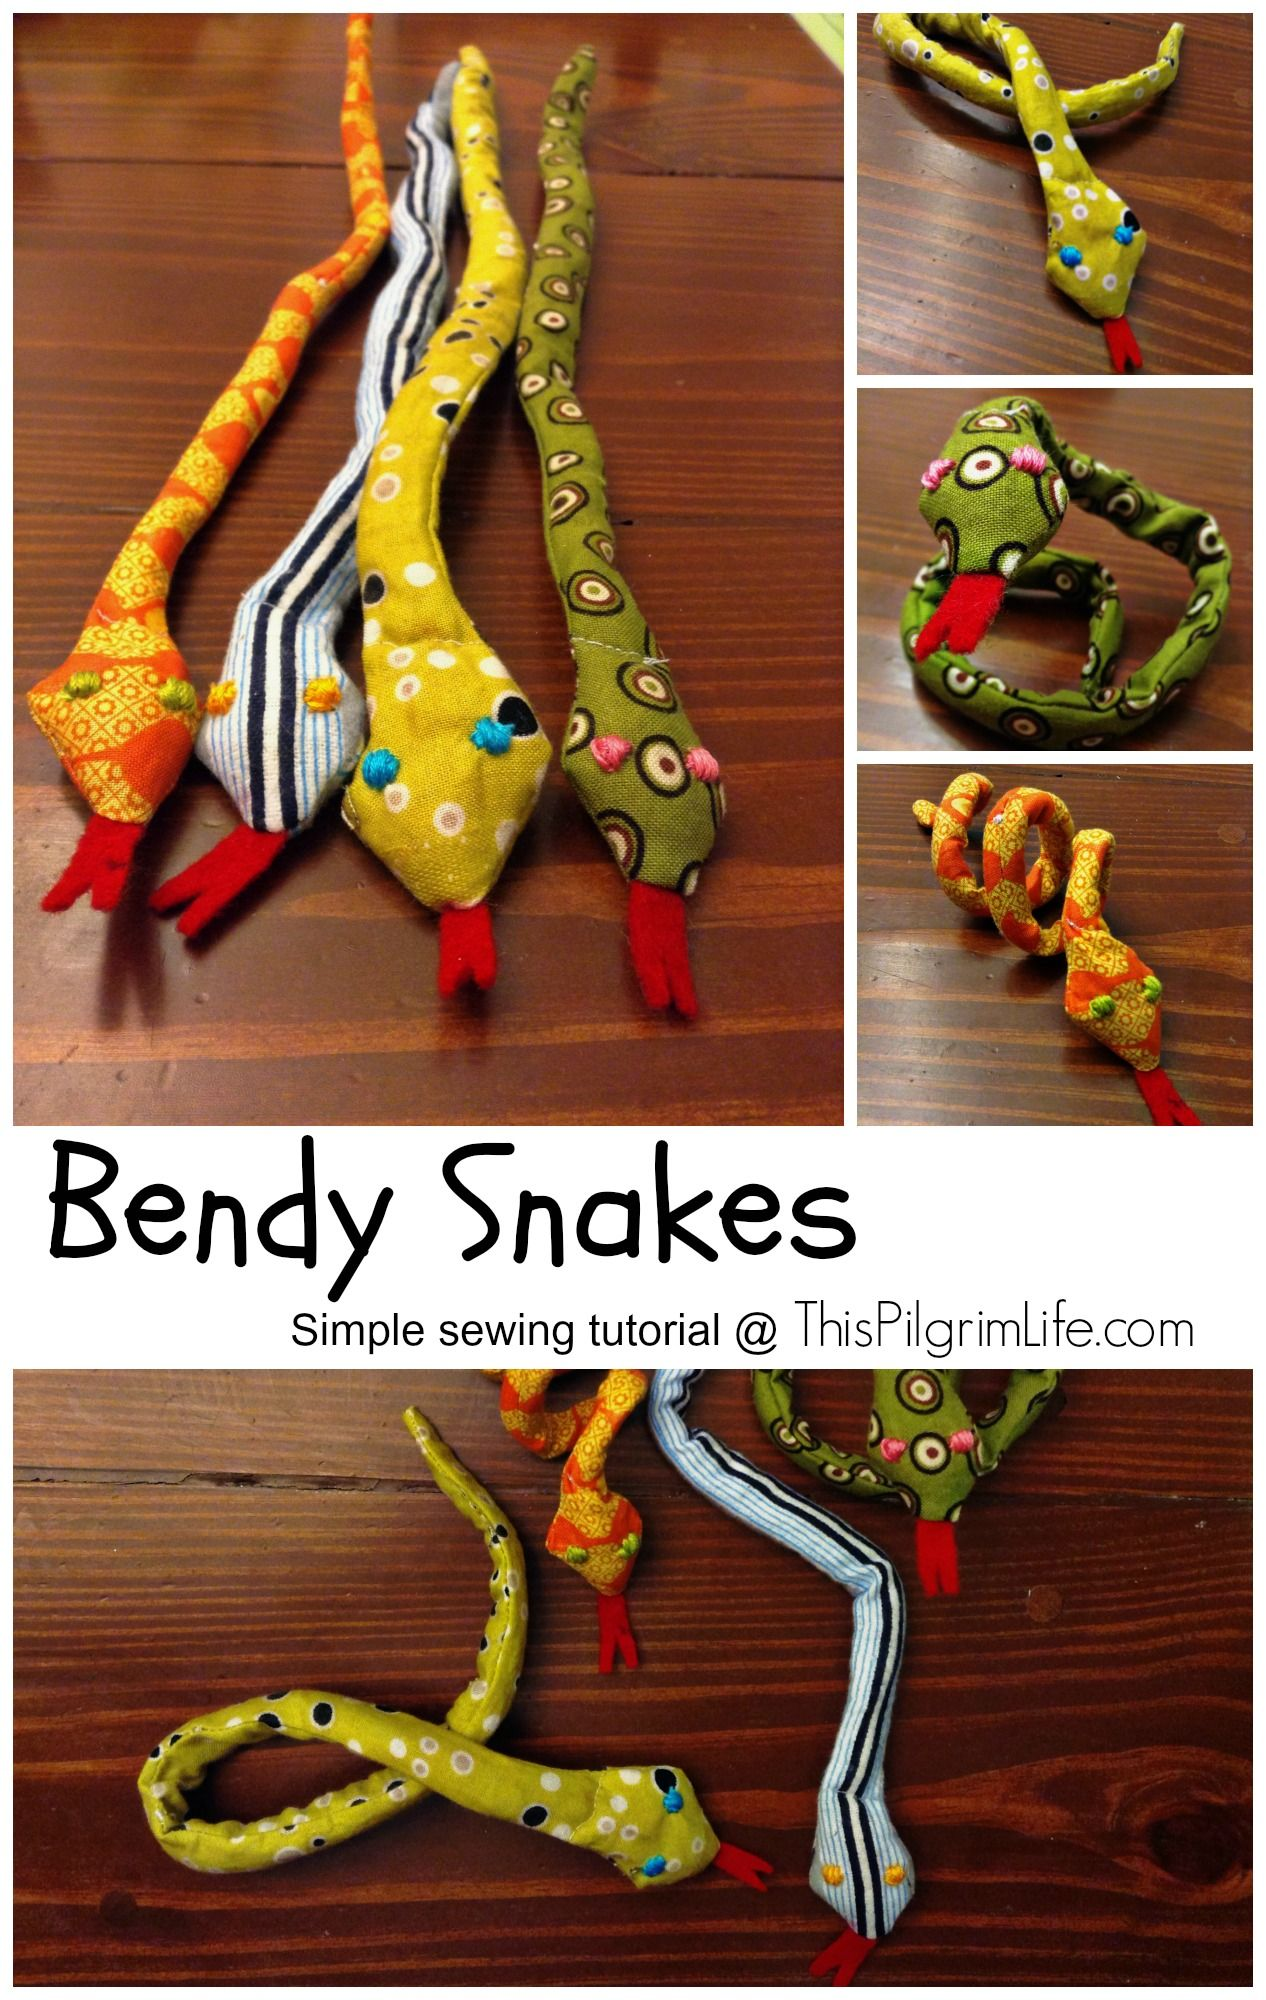 Bendy Snake Tutorial Sewing Projects For Kids Sewing